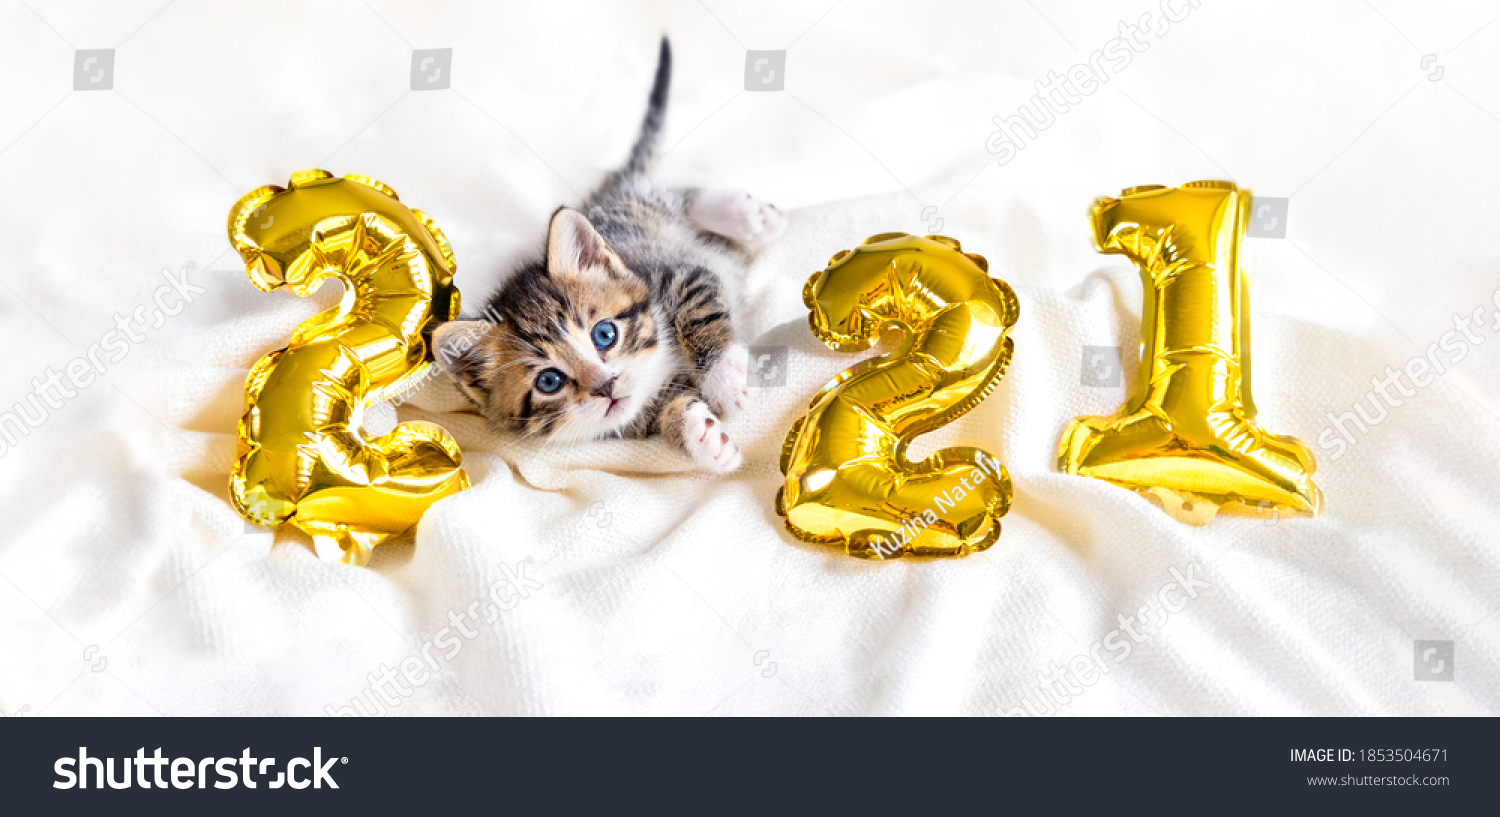 Christmas cat 2021. Kitty with gold foil balloons number 2021 new year. Striped kitten on Christmas festive white background.  #1853504671